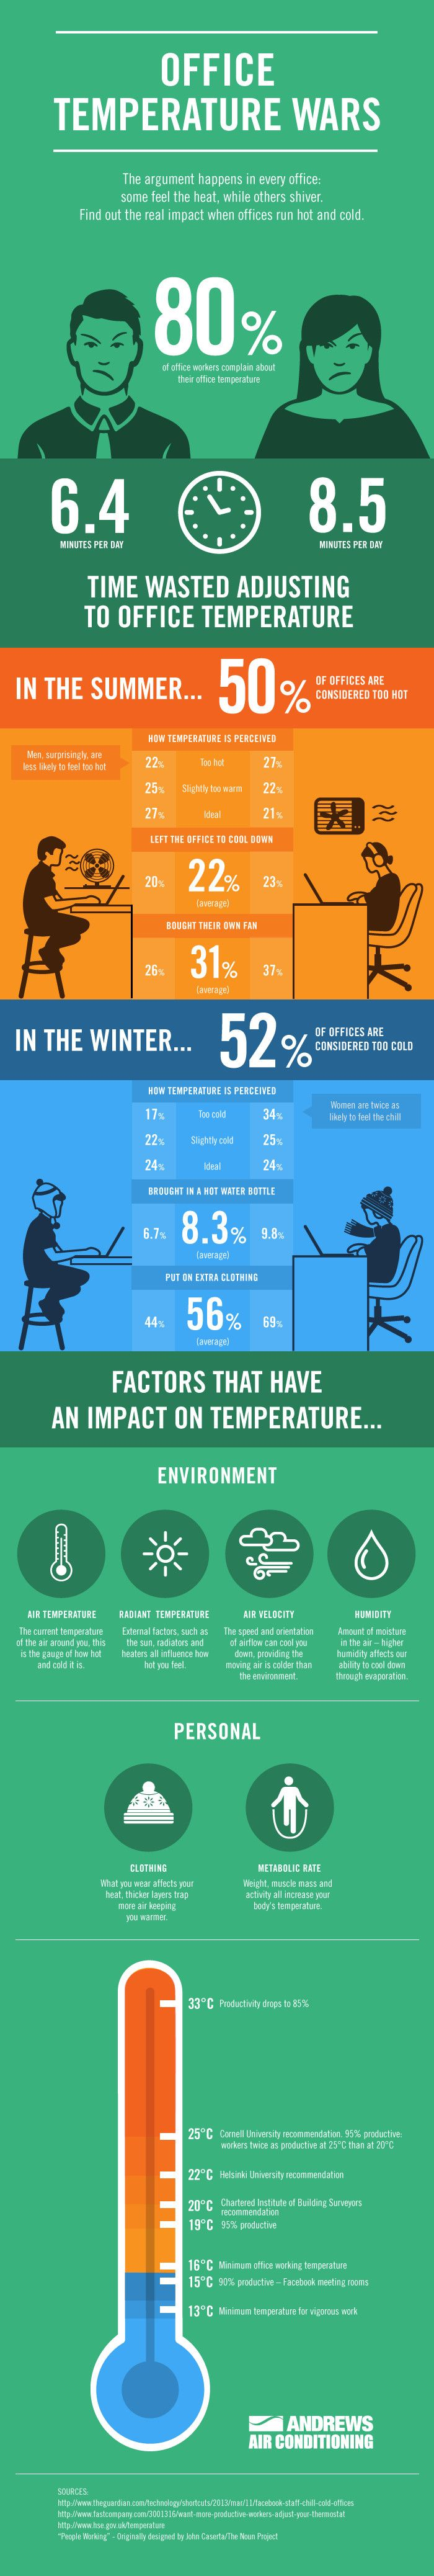 Office Temperature Wars #infographic #Office ##productivity #Business #Employees